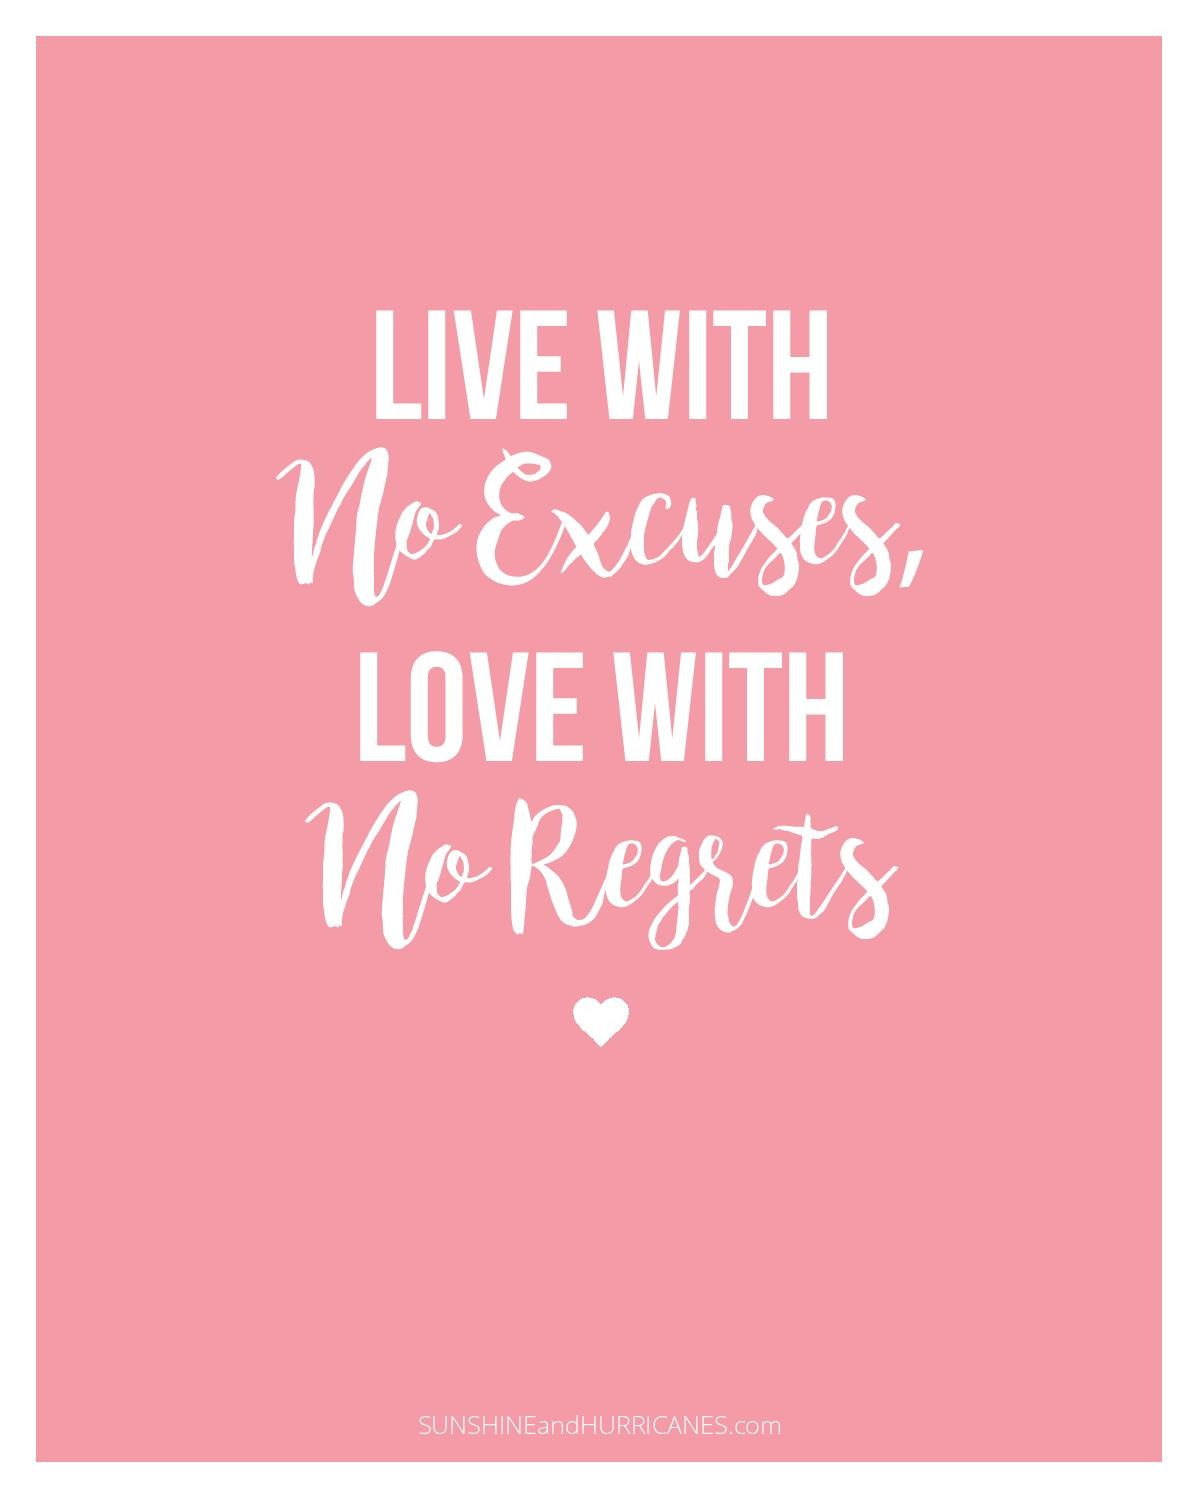 Printable Quotes for Teen Girls - Fun and Totally FREE